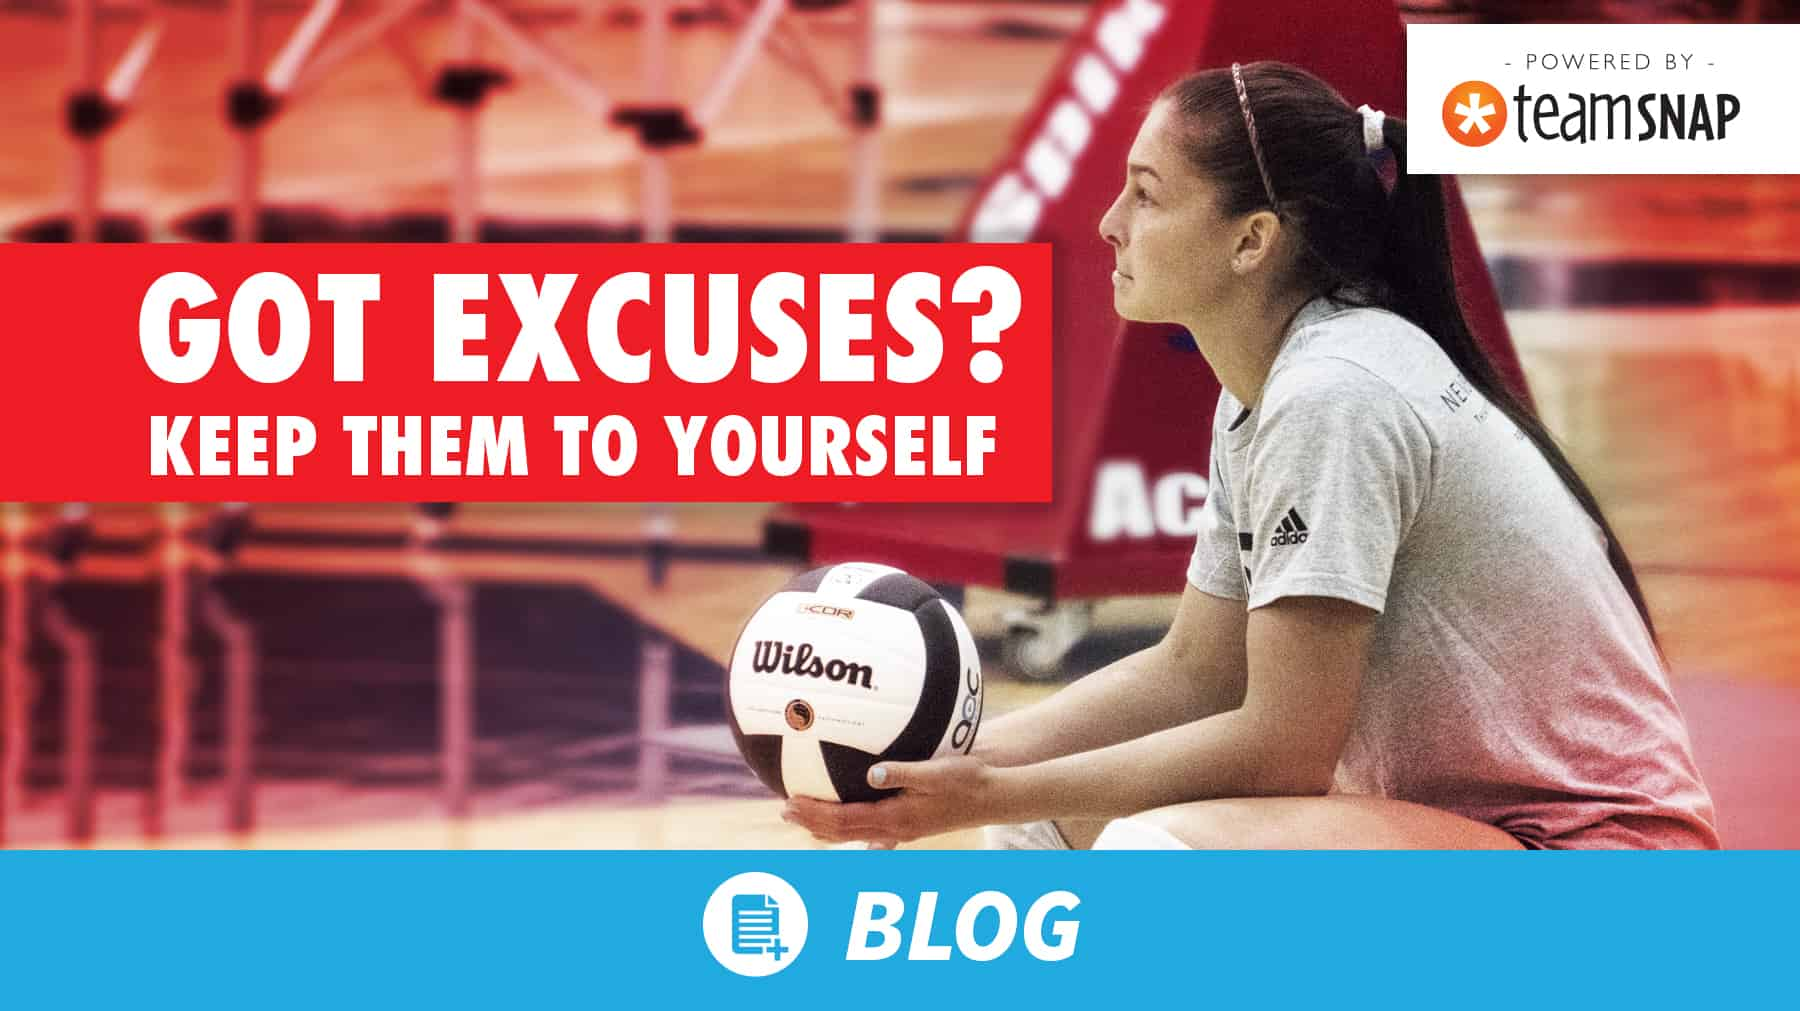 Got excuses? Keep them to yourself